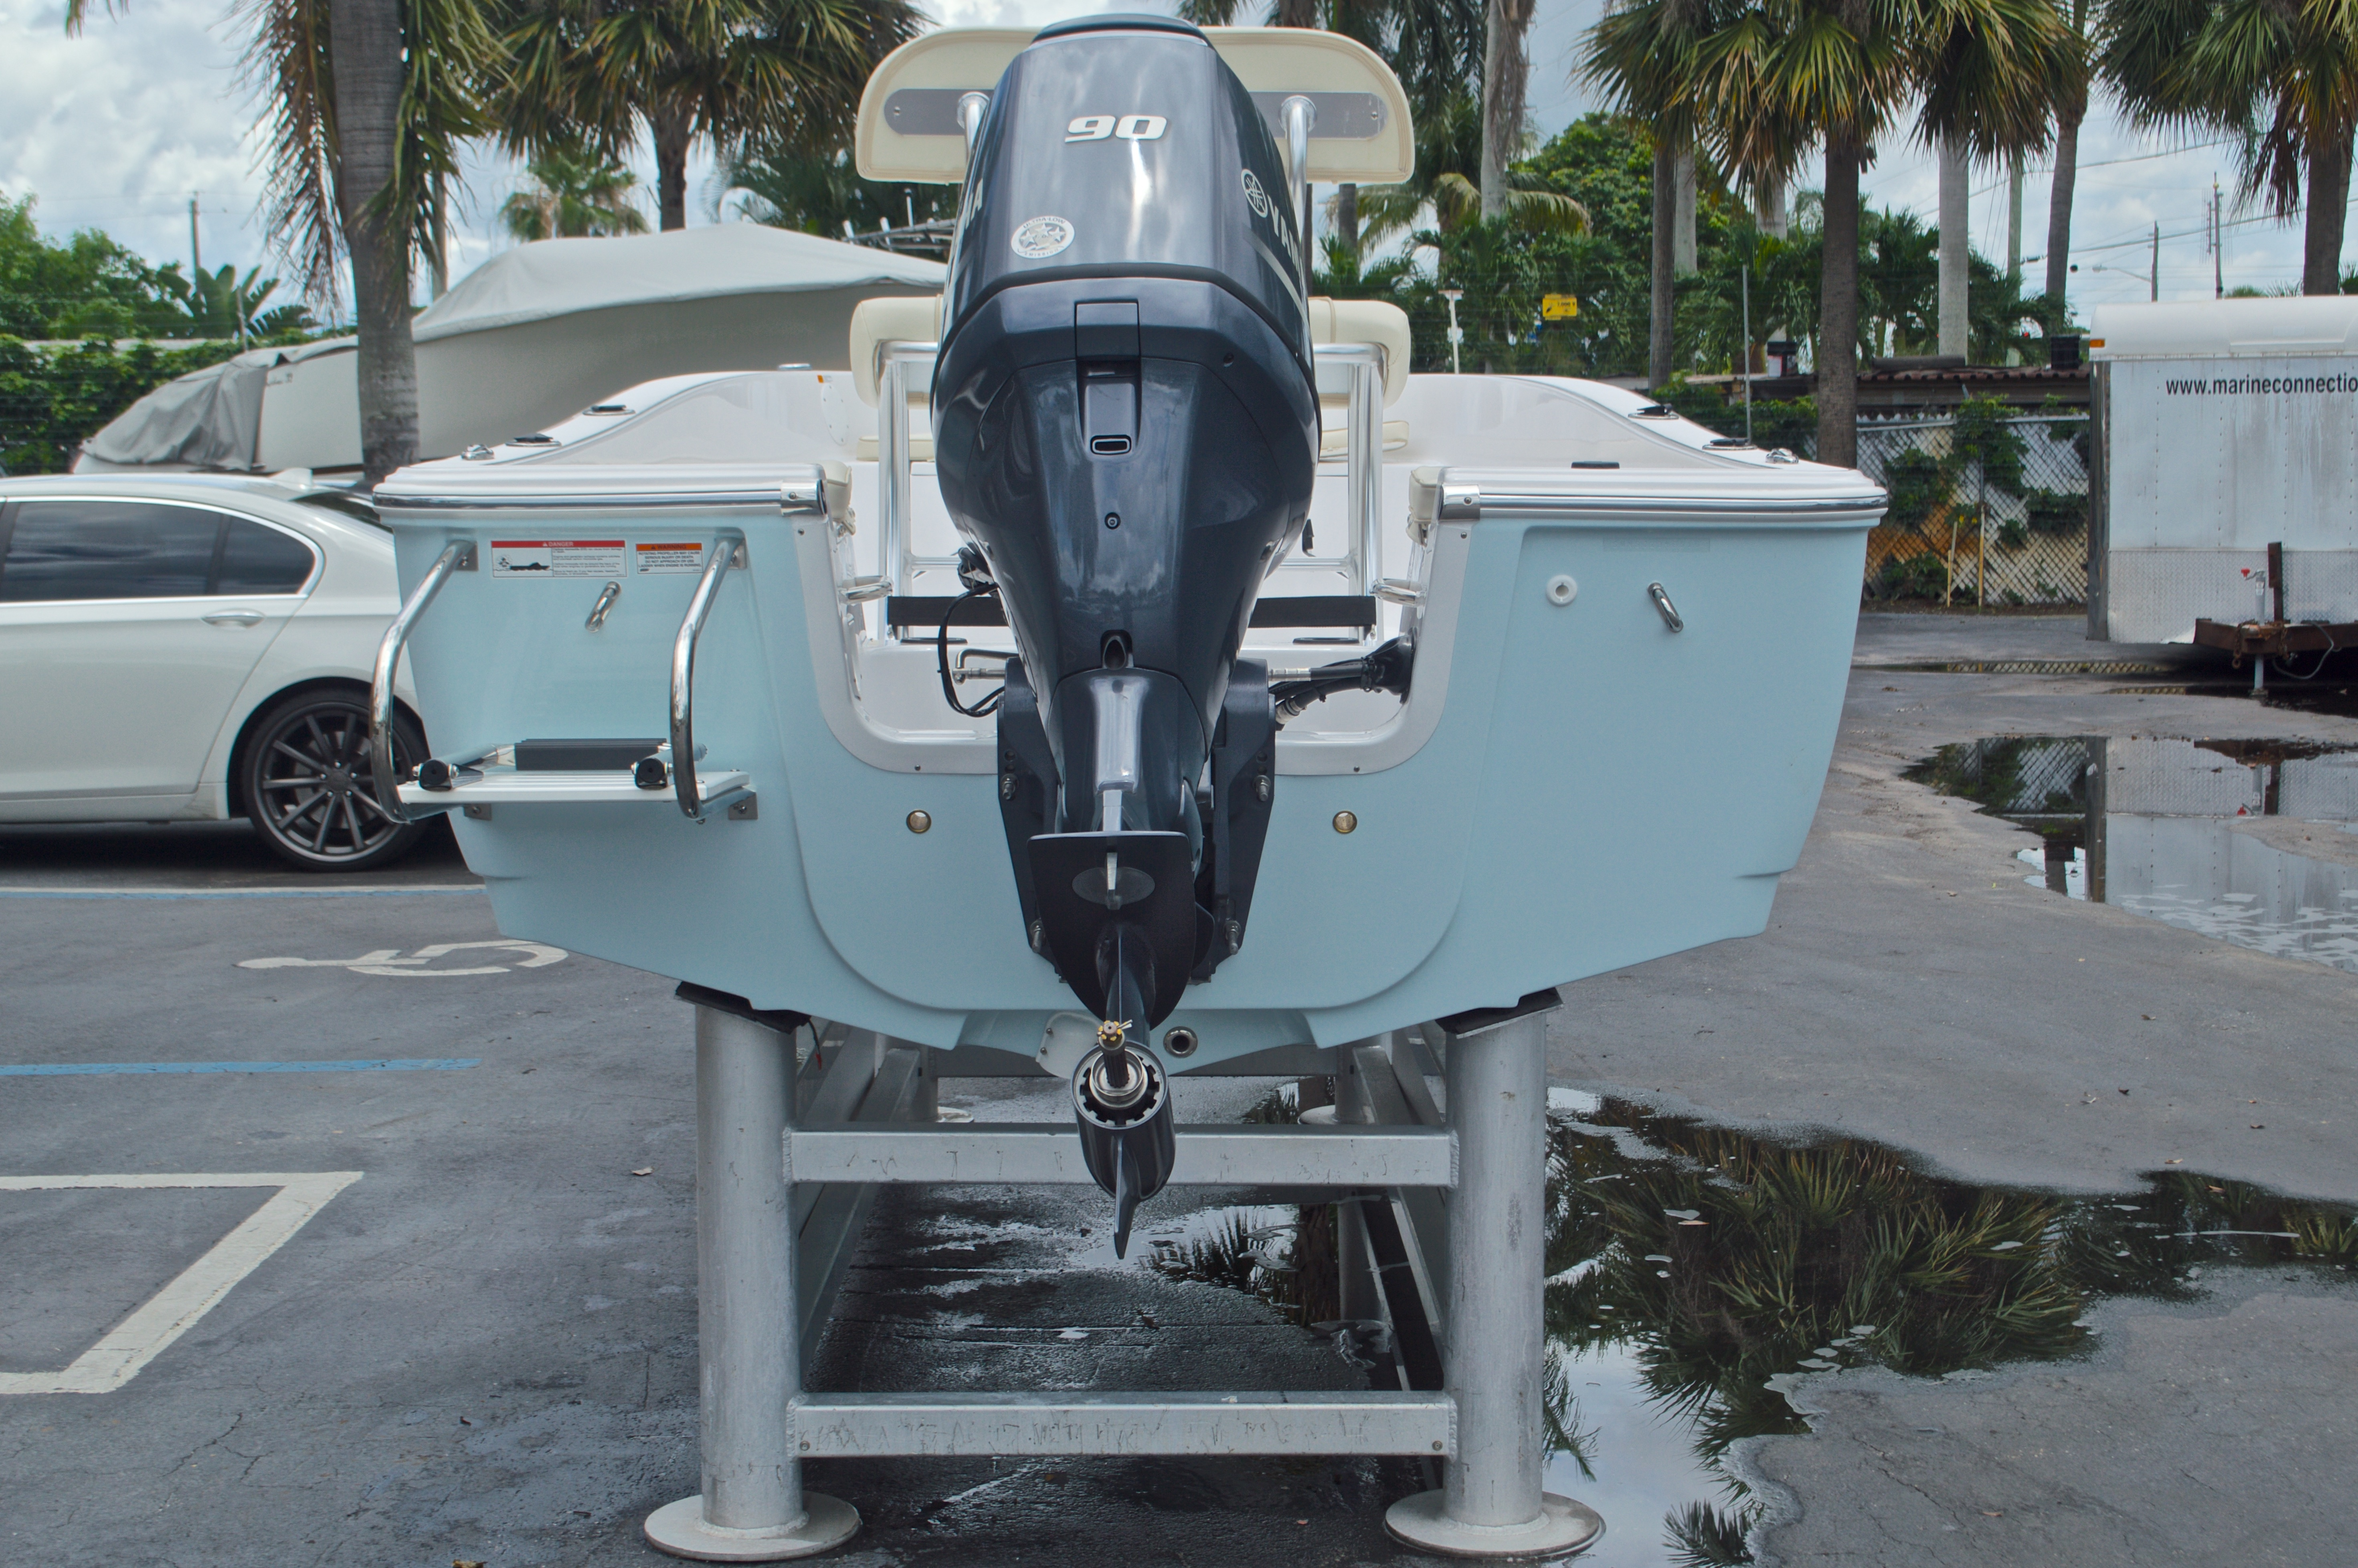 Thumbnail 6 for New 2016 Sportsman 17 Island Reef boat for sale in Miami, FL